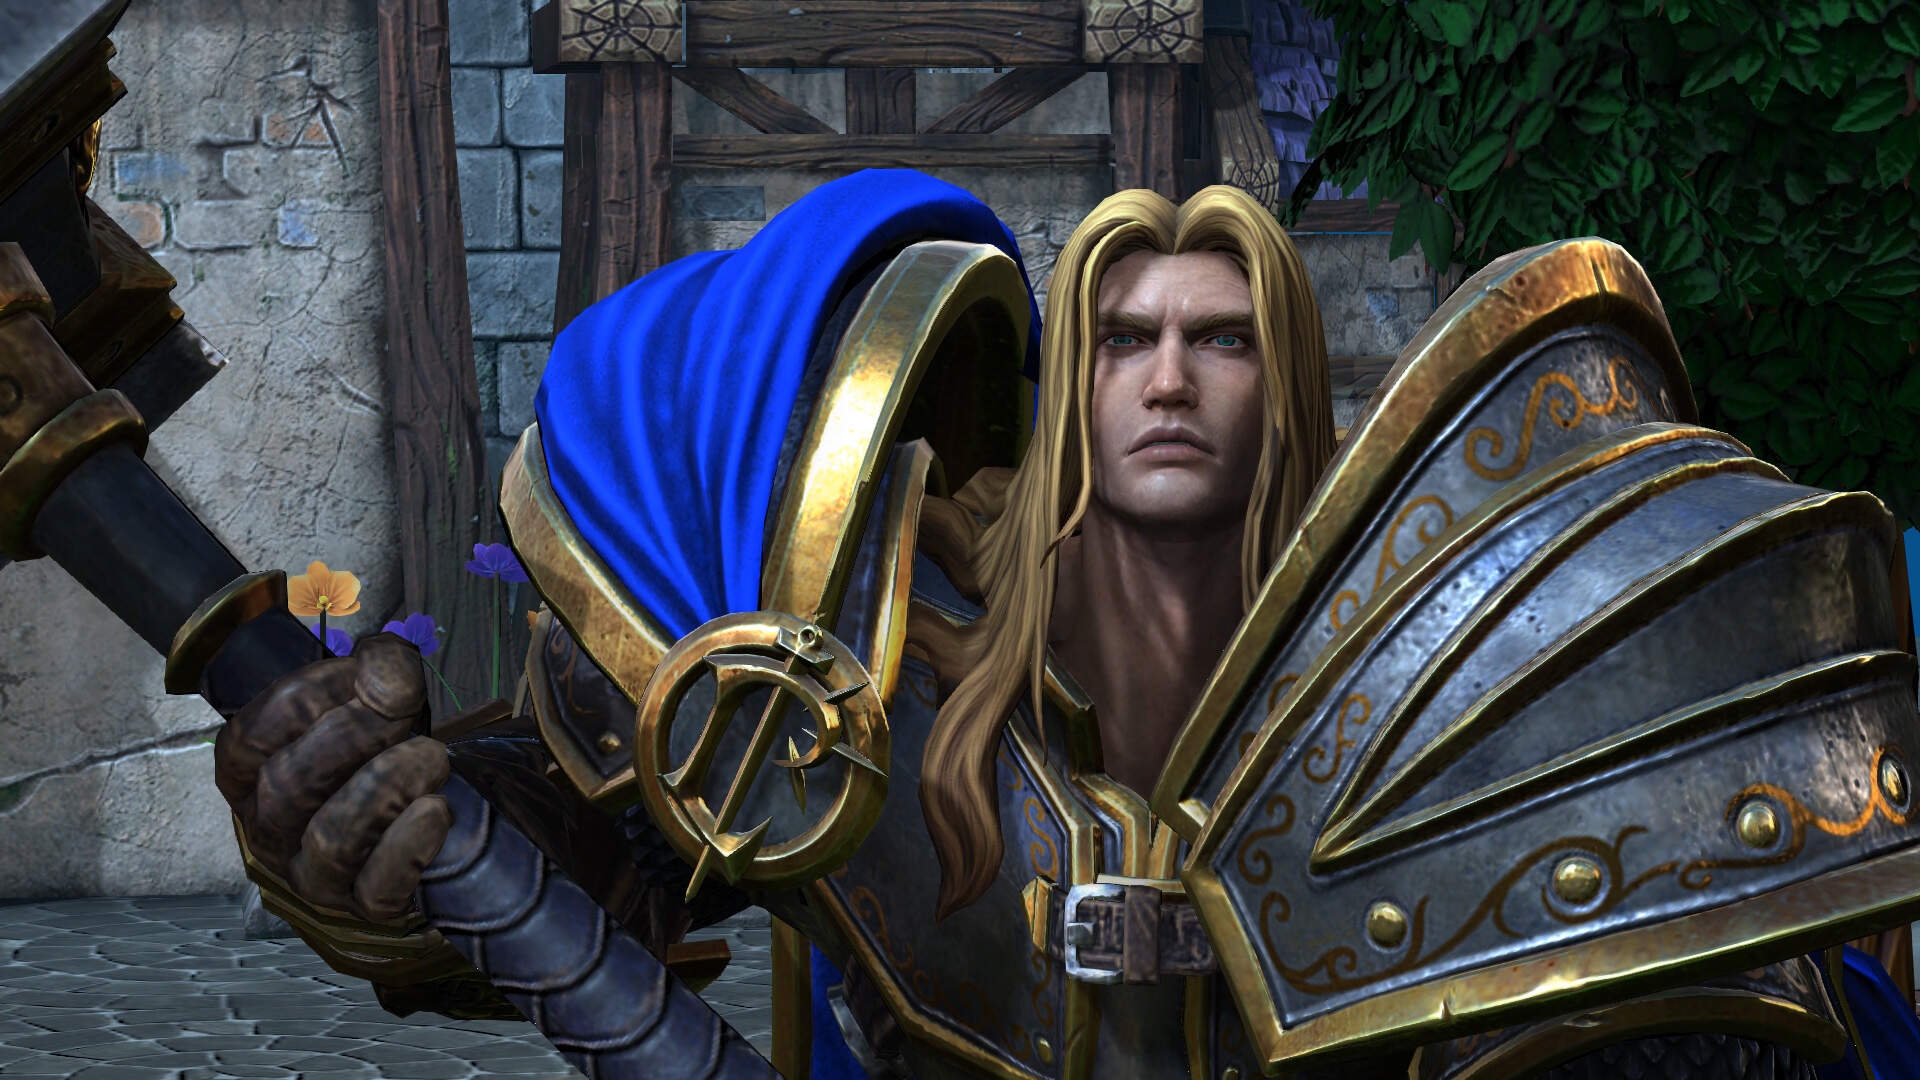 Warcraft 3: Reforged Arrives Next Month with a Rebuilt World Editor